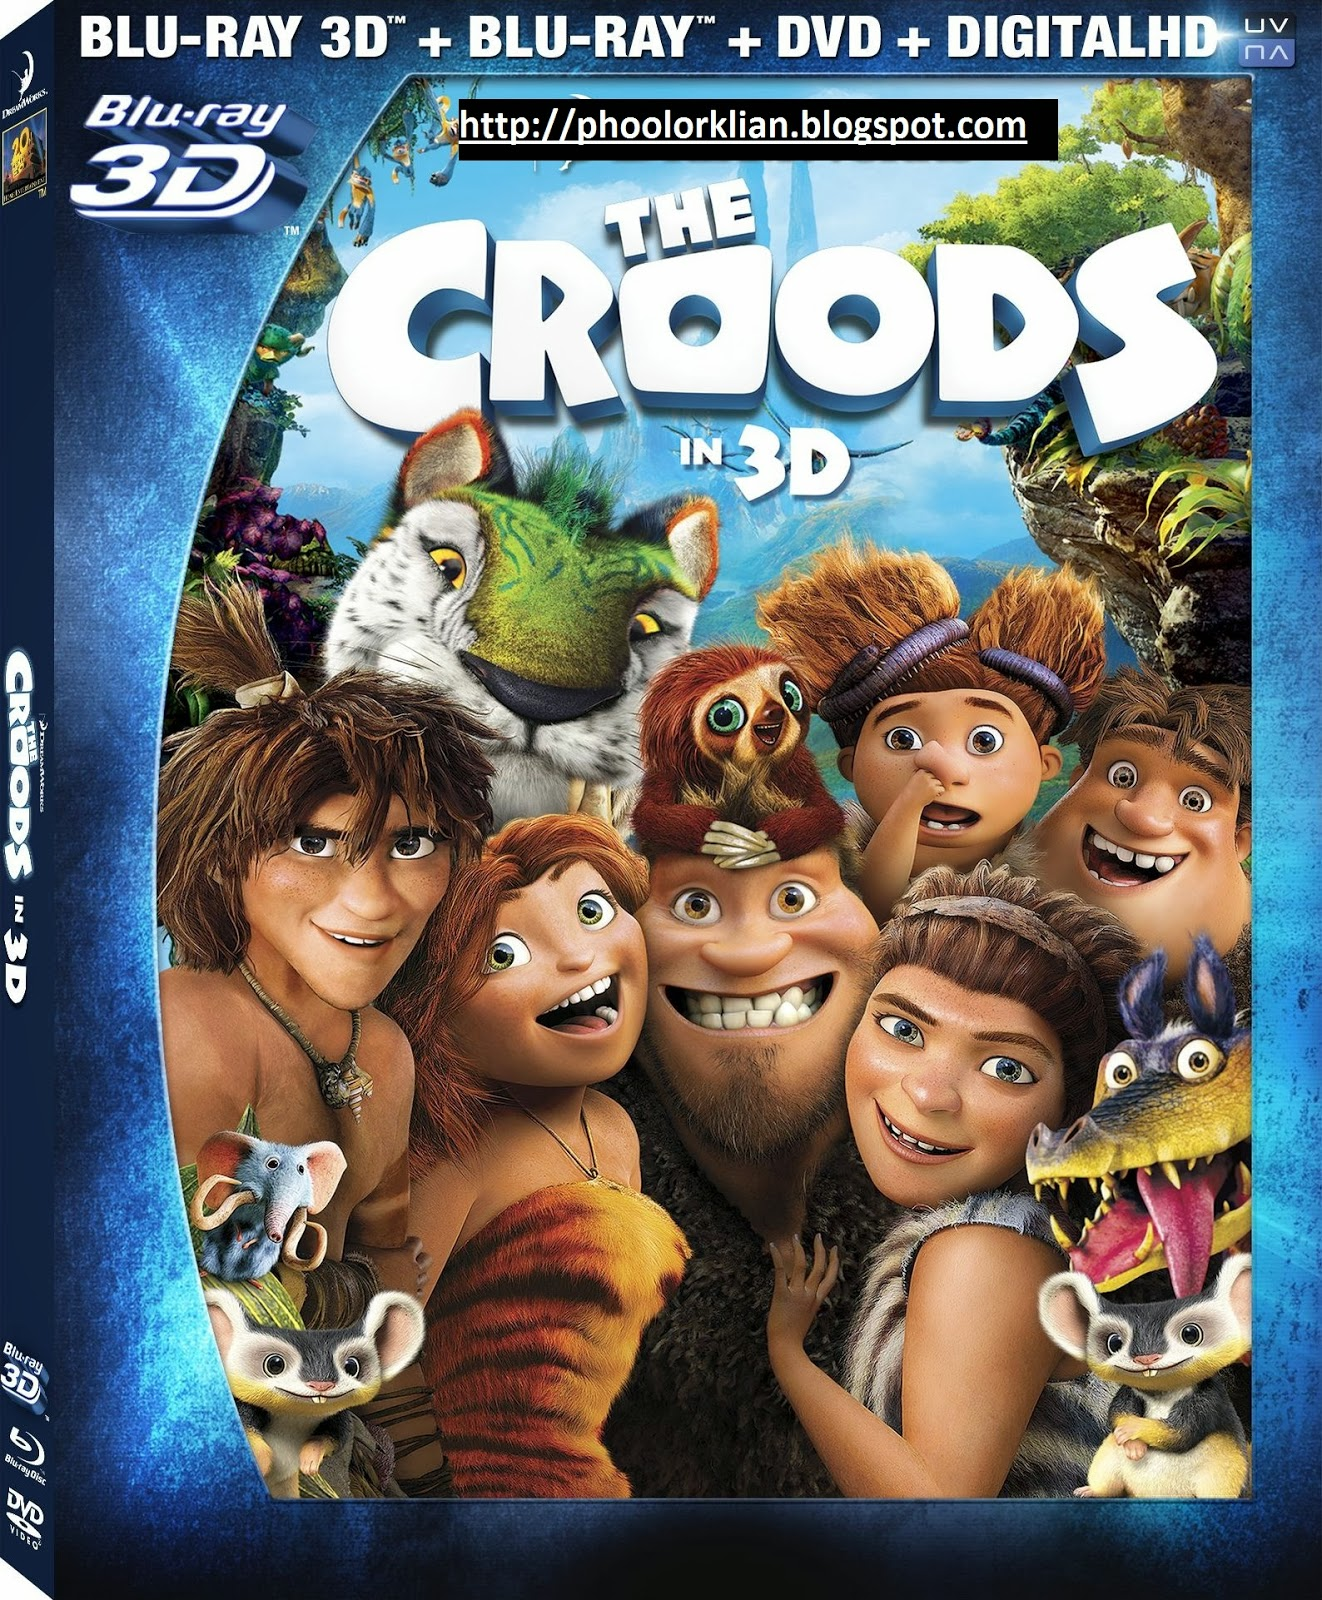 The Croods 2 Movie: Urdu & English Cartoon Movies: The Croods Full Movie In